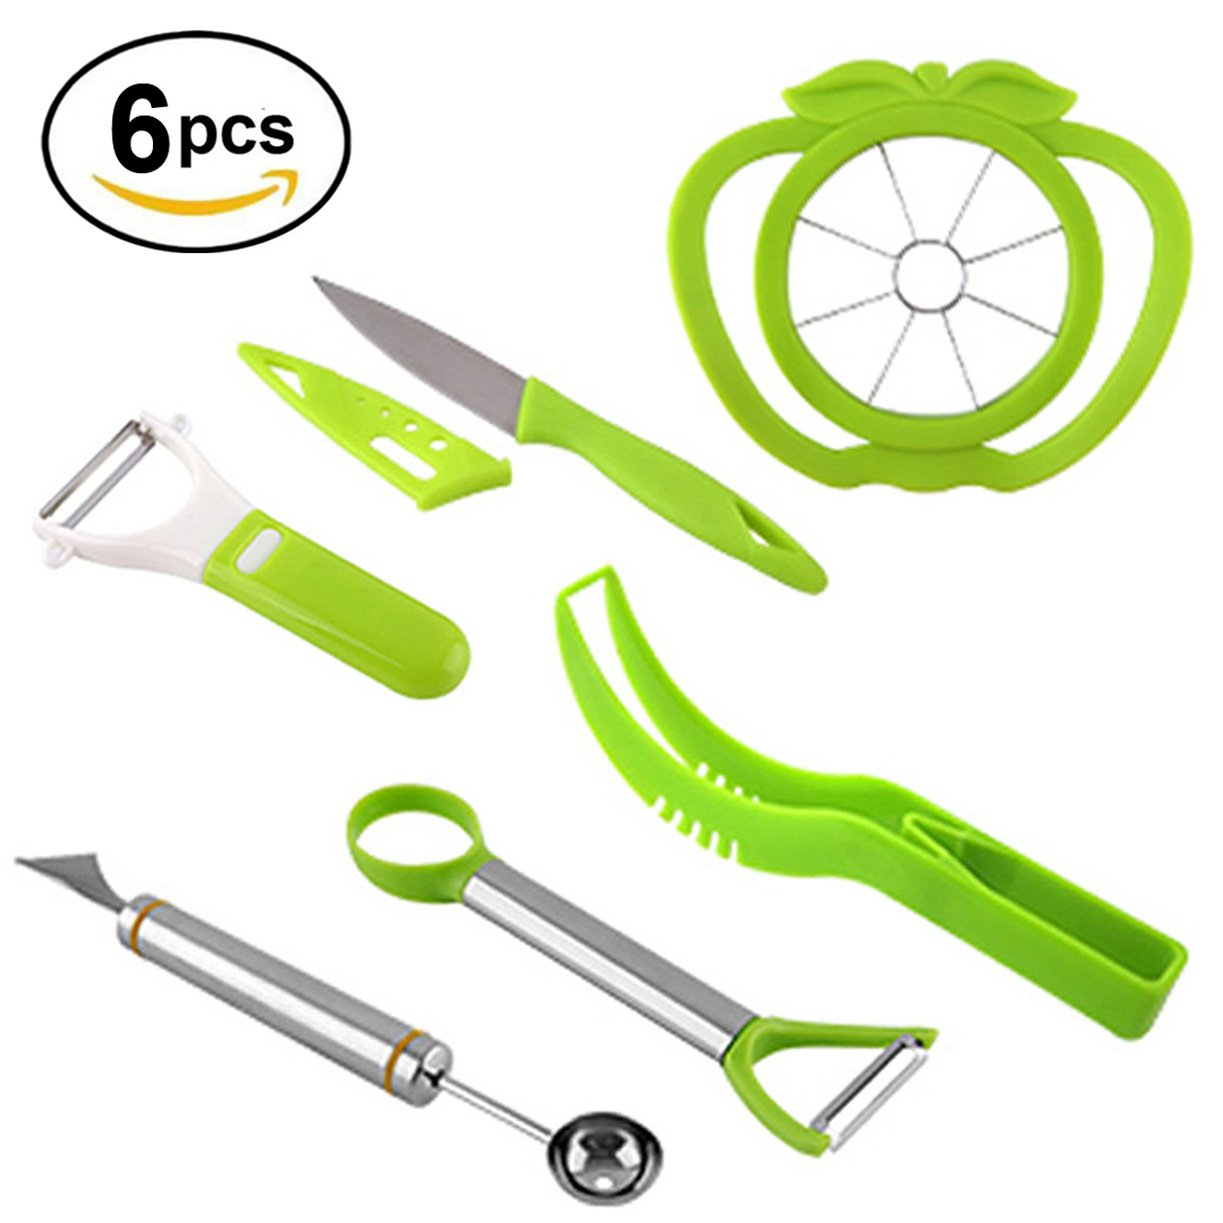 NewFerU Plastic Stainless Steel Kitchen Fruit Carving Tool Set Garnishing Melon Baller Scoop Spoon Knife Shapes Kit With Apple Cutter Corer, Watermelon Slicer Cutter Server and Peeler Pack of 6